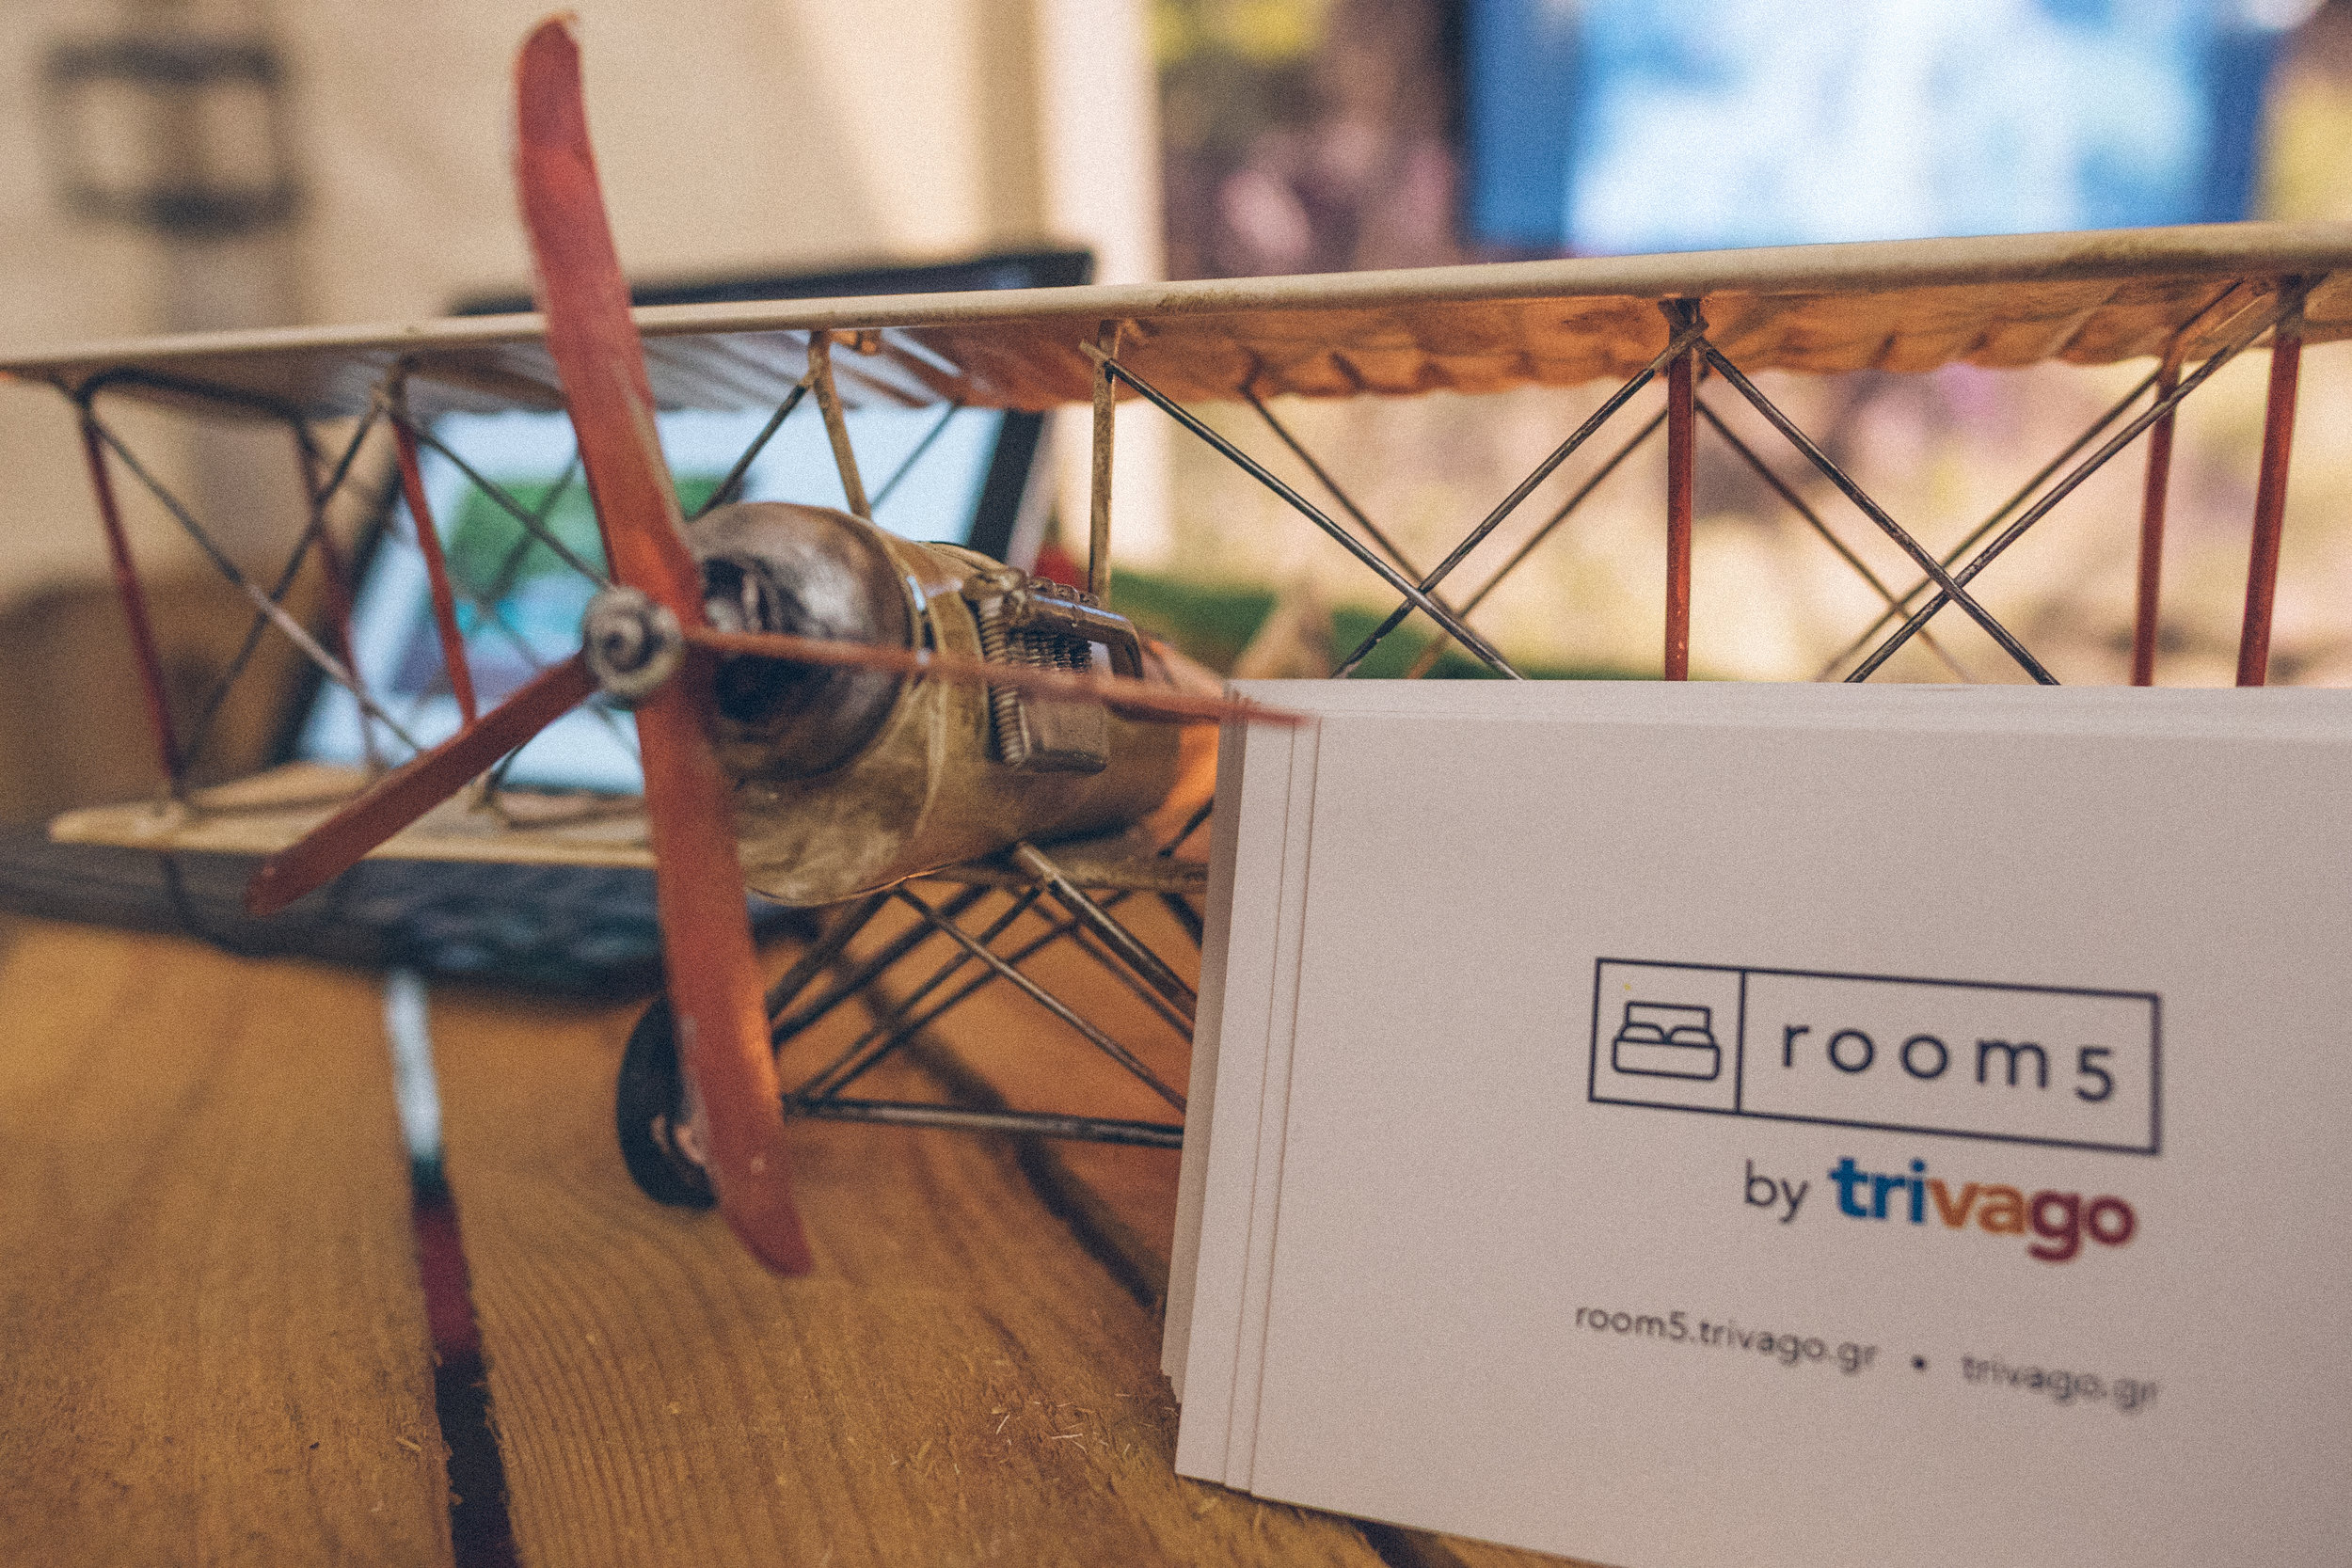 trivago has a blog for travel in greece called room 5